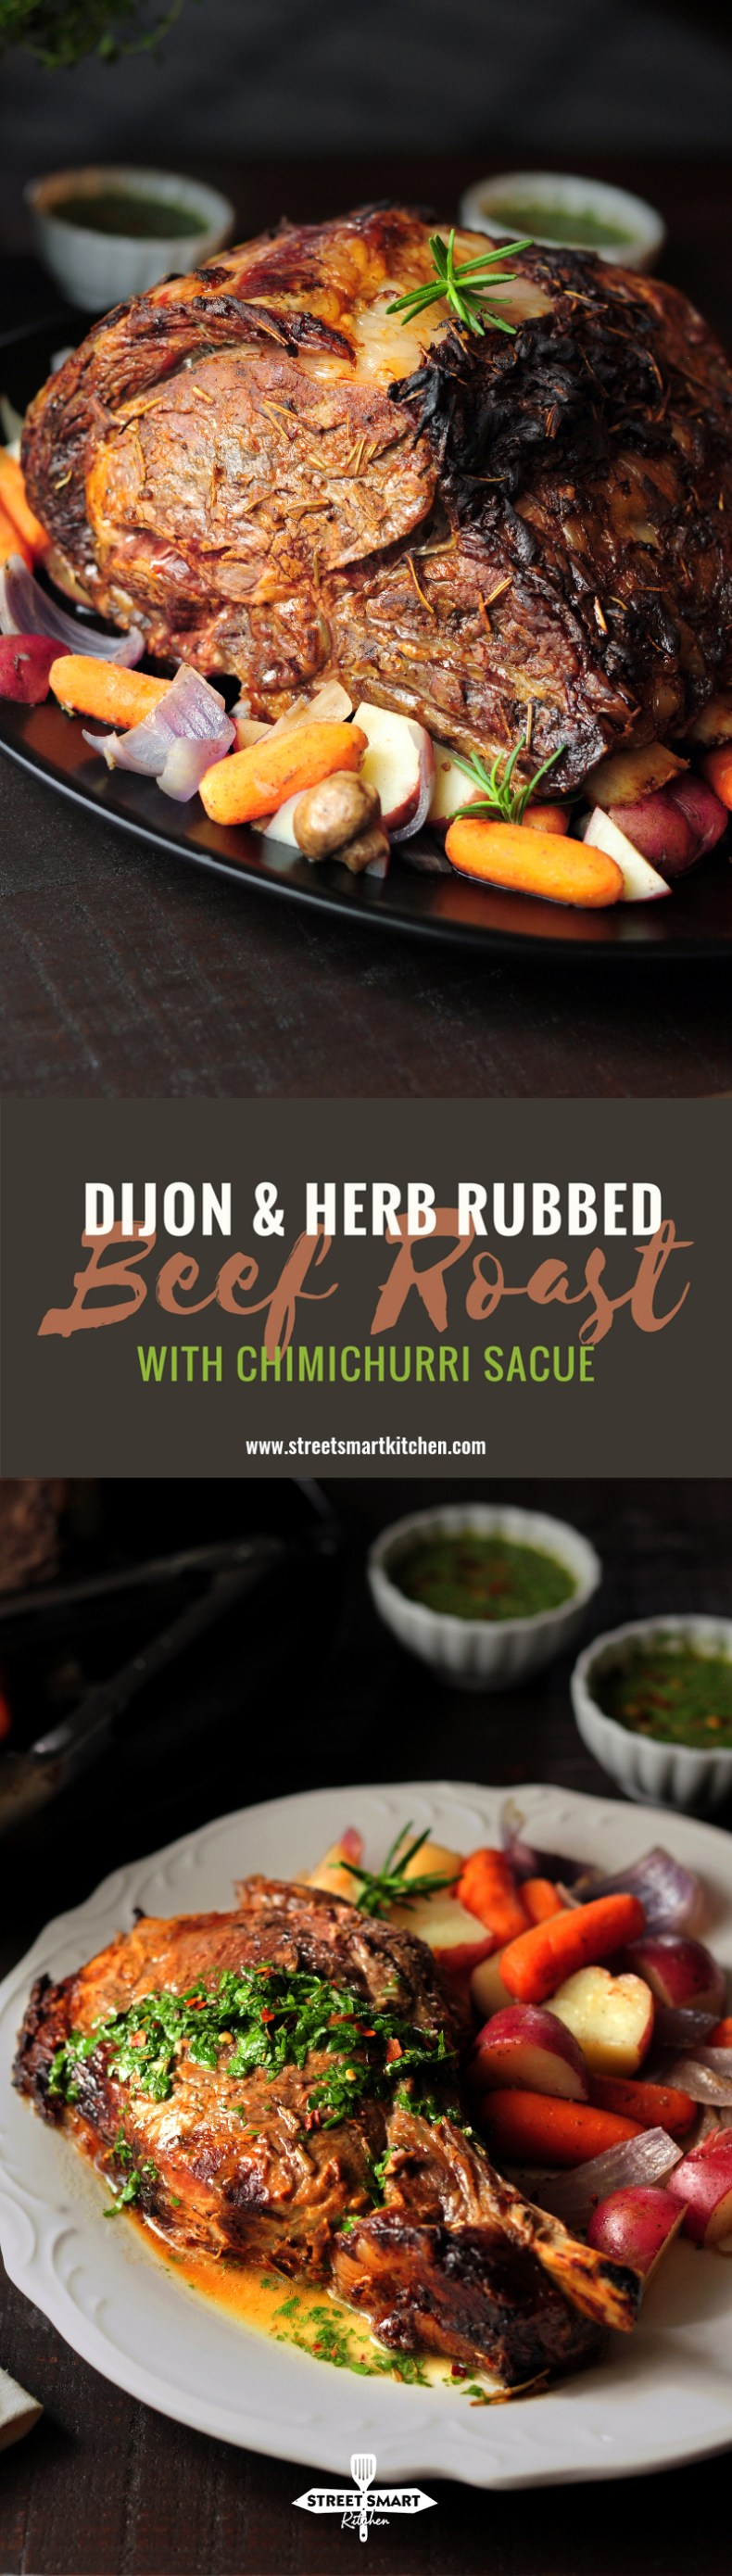 Dijon & Herb Rubbed Rib Roast with Chimichurri Sauce